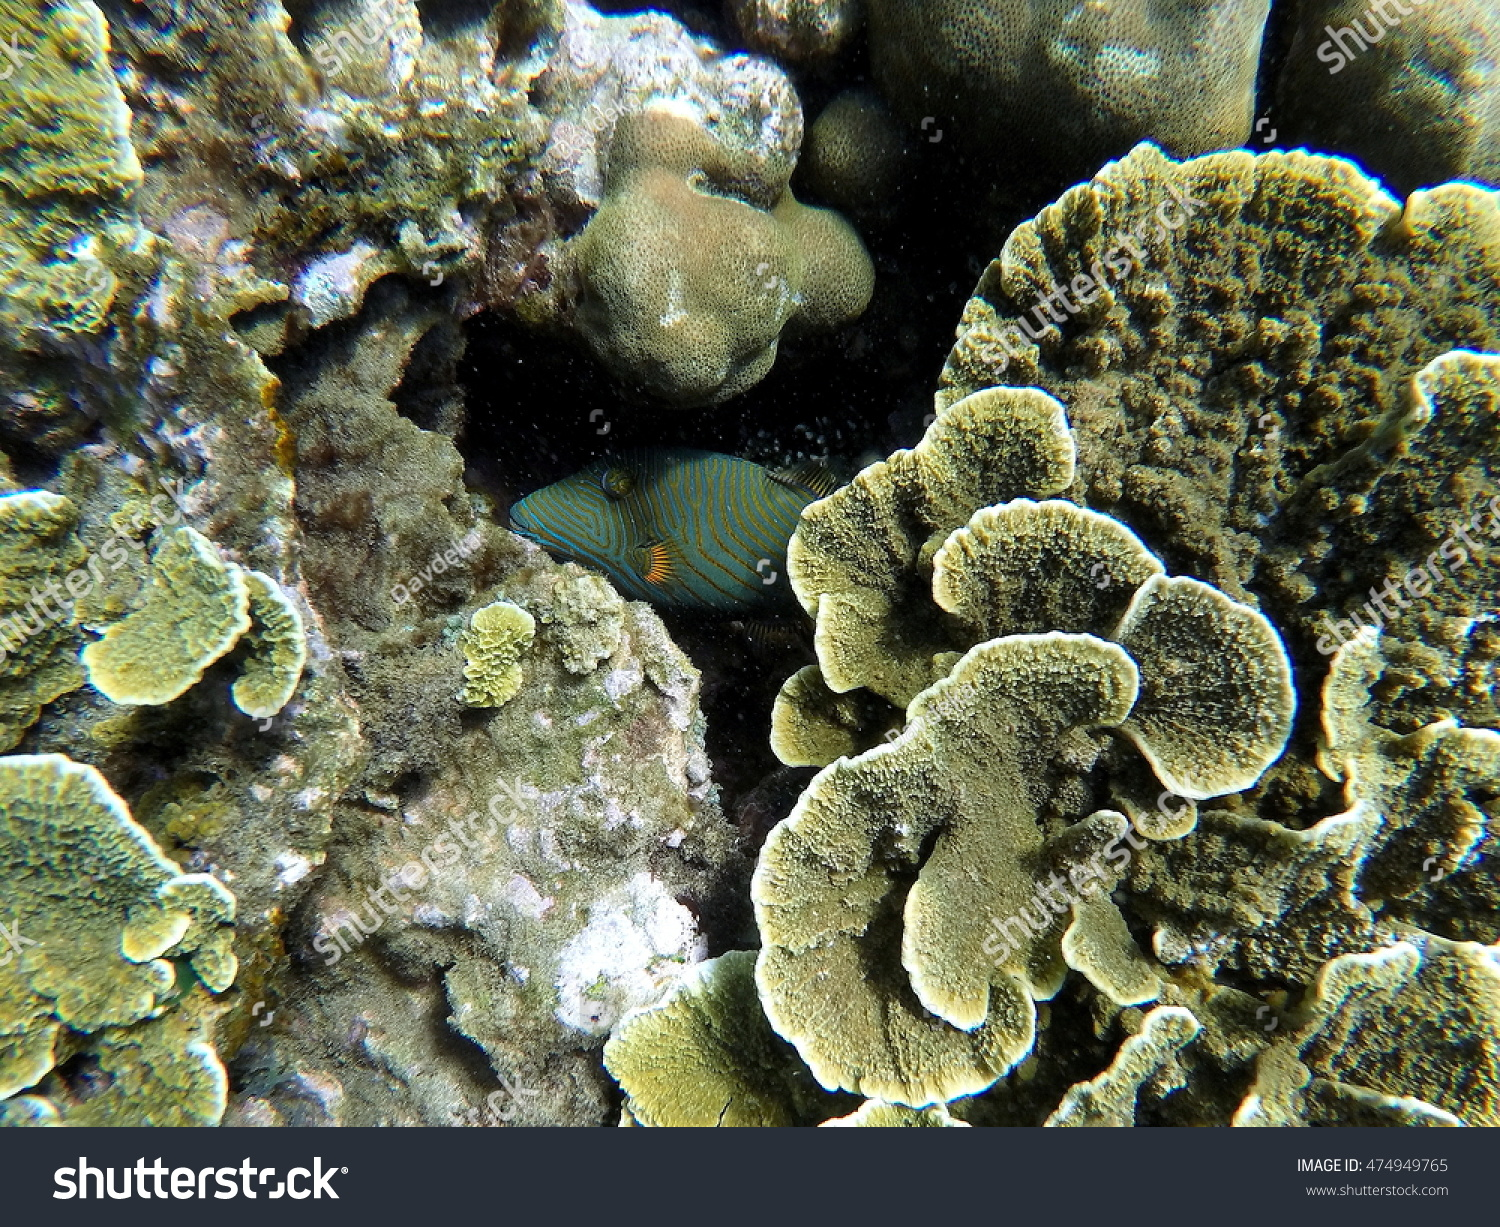 nature coral underwater landscape - photo #16